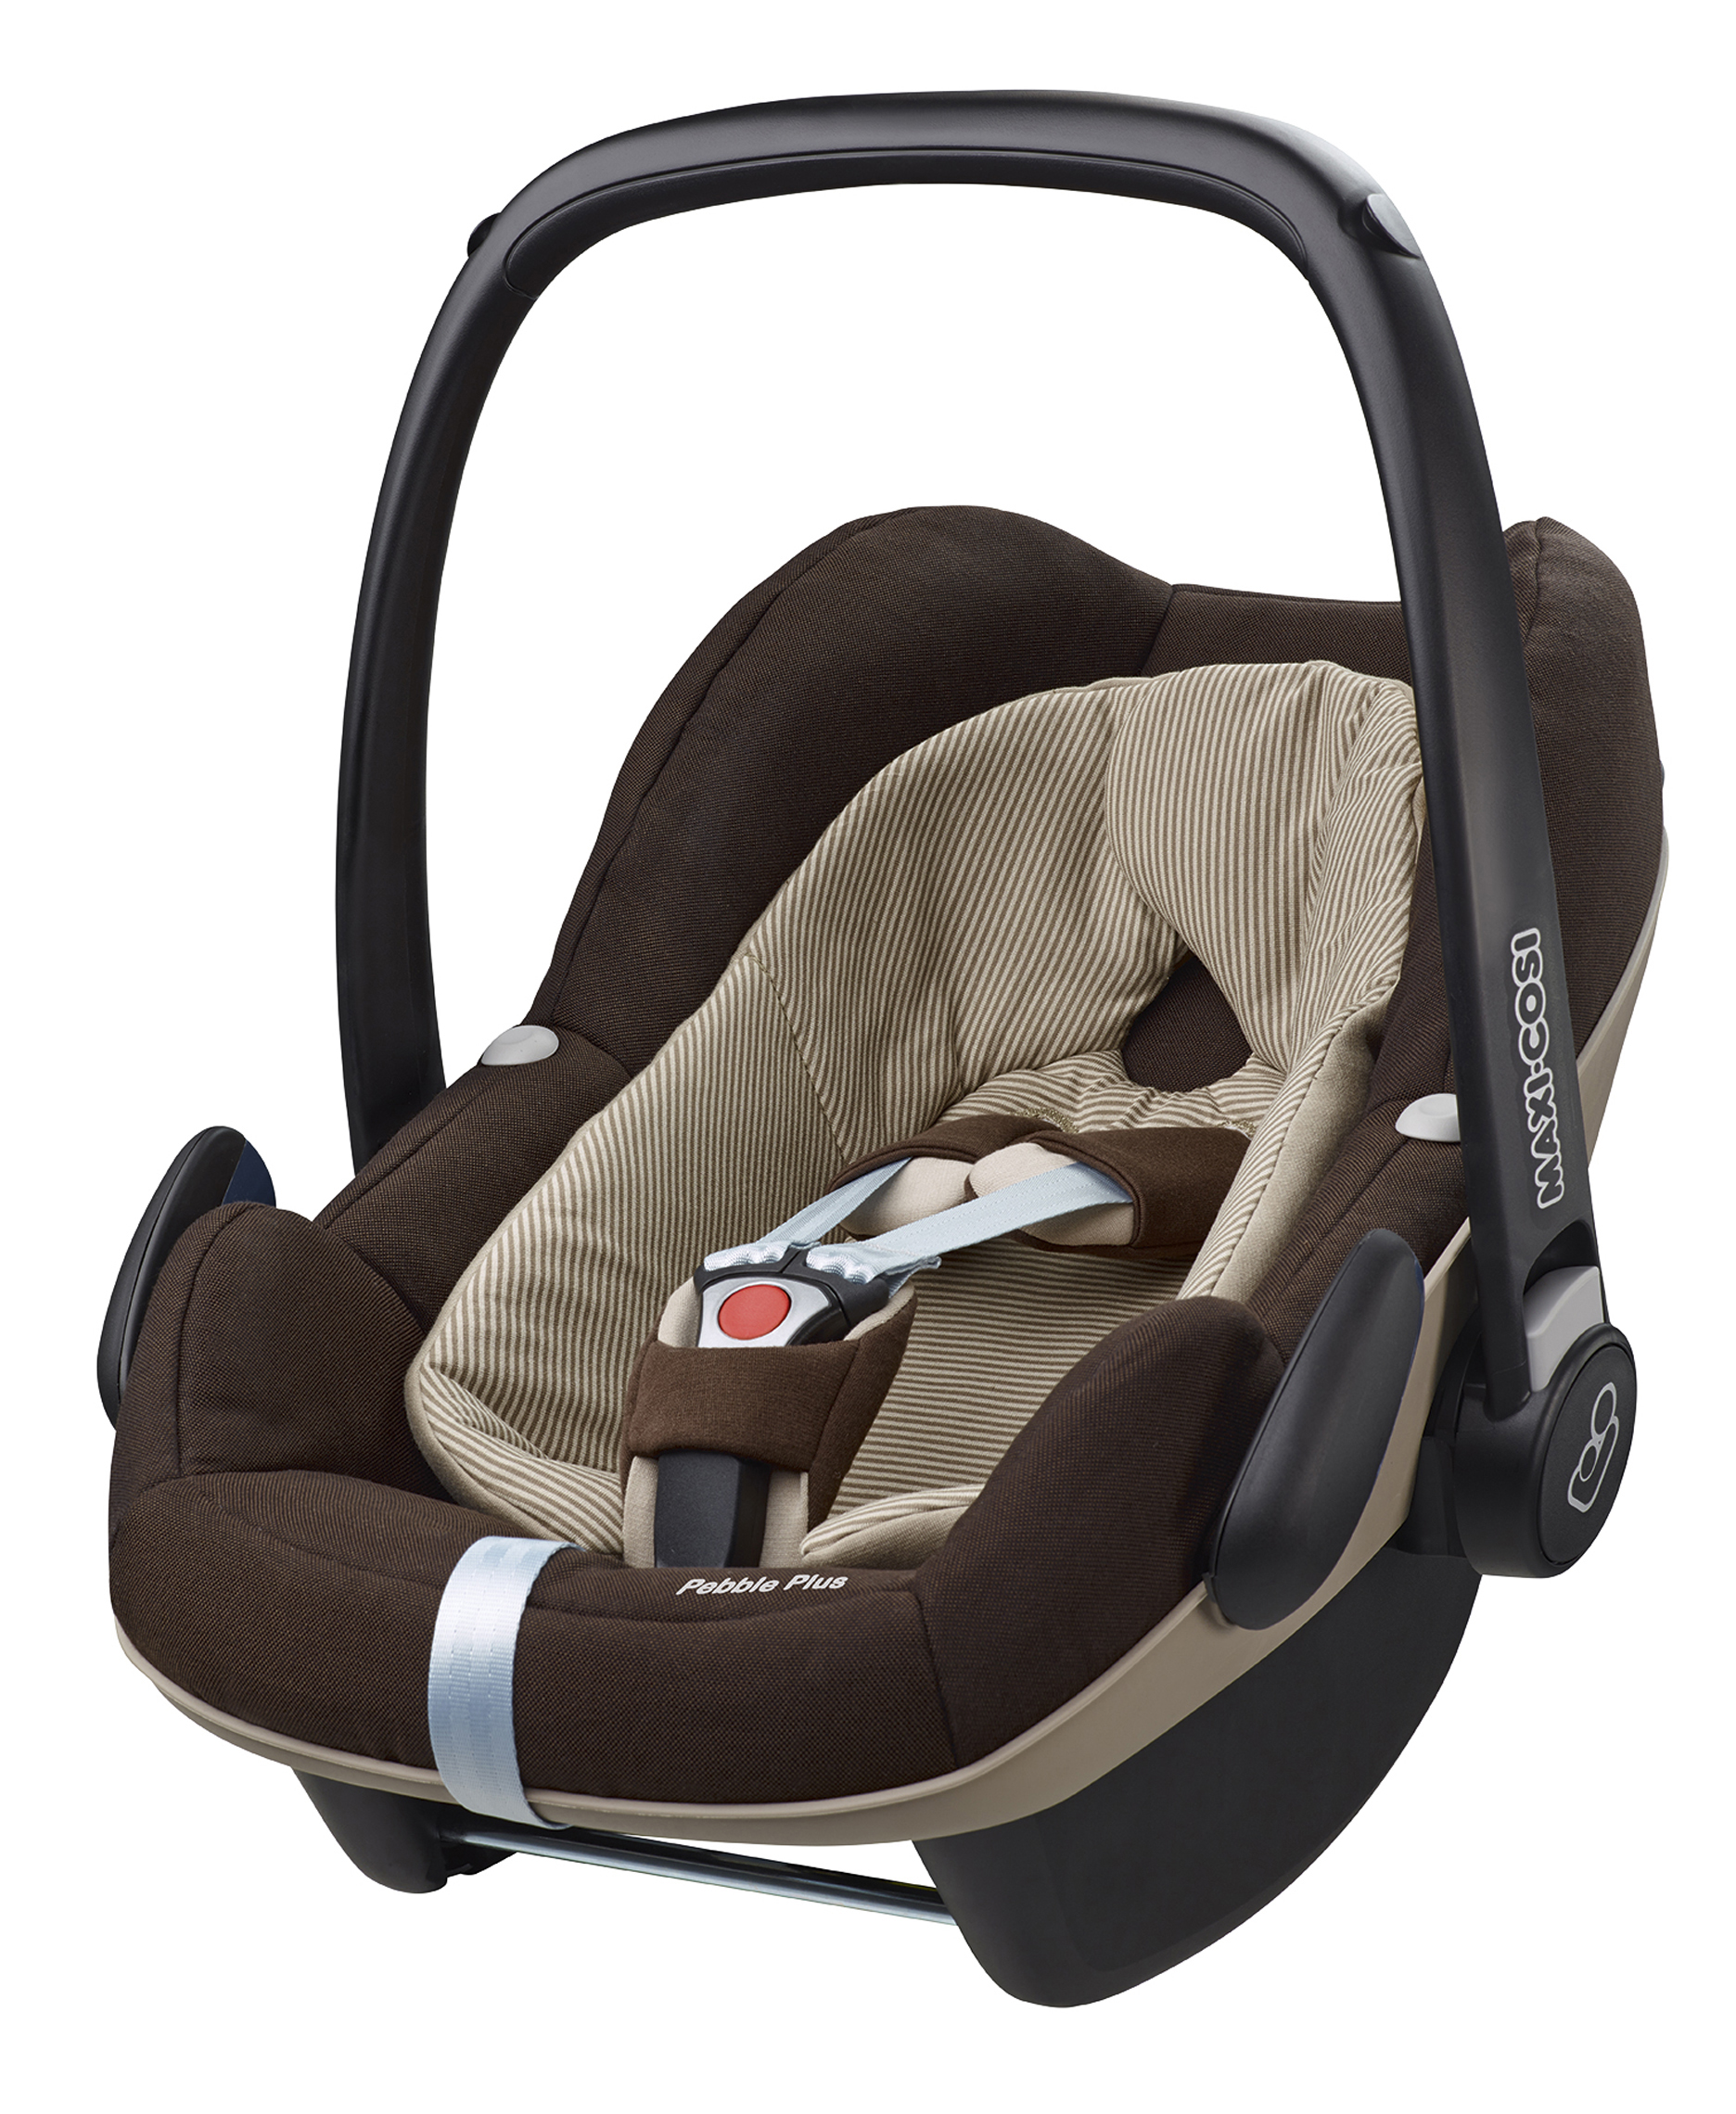 maxi cosi 2way family concept 2017 earth brown buy at kidsroom car seats. Black Bedroom Furniture Sets. Home Design Ideas